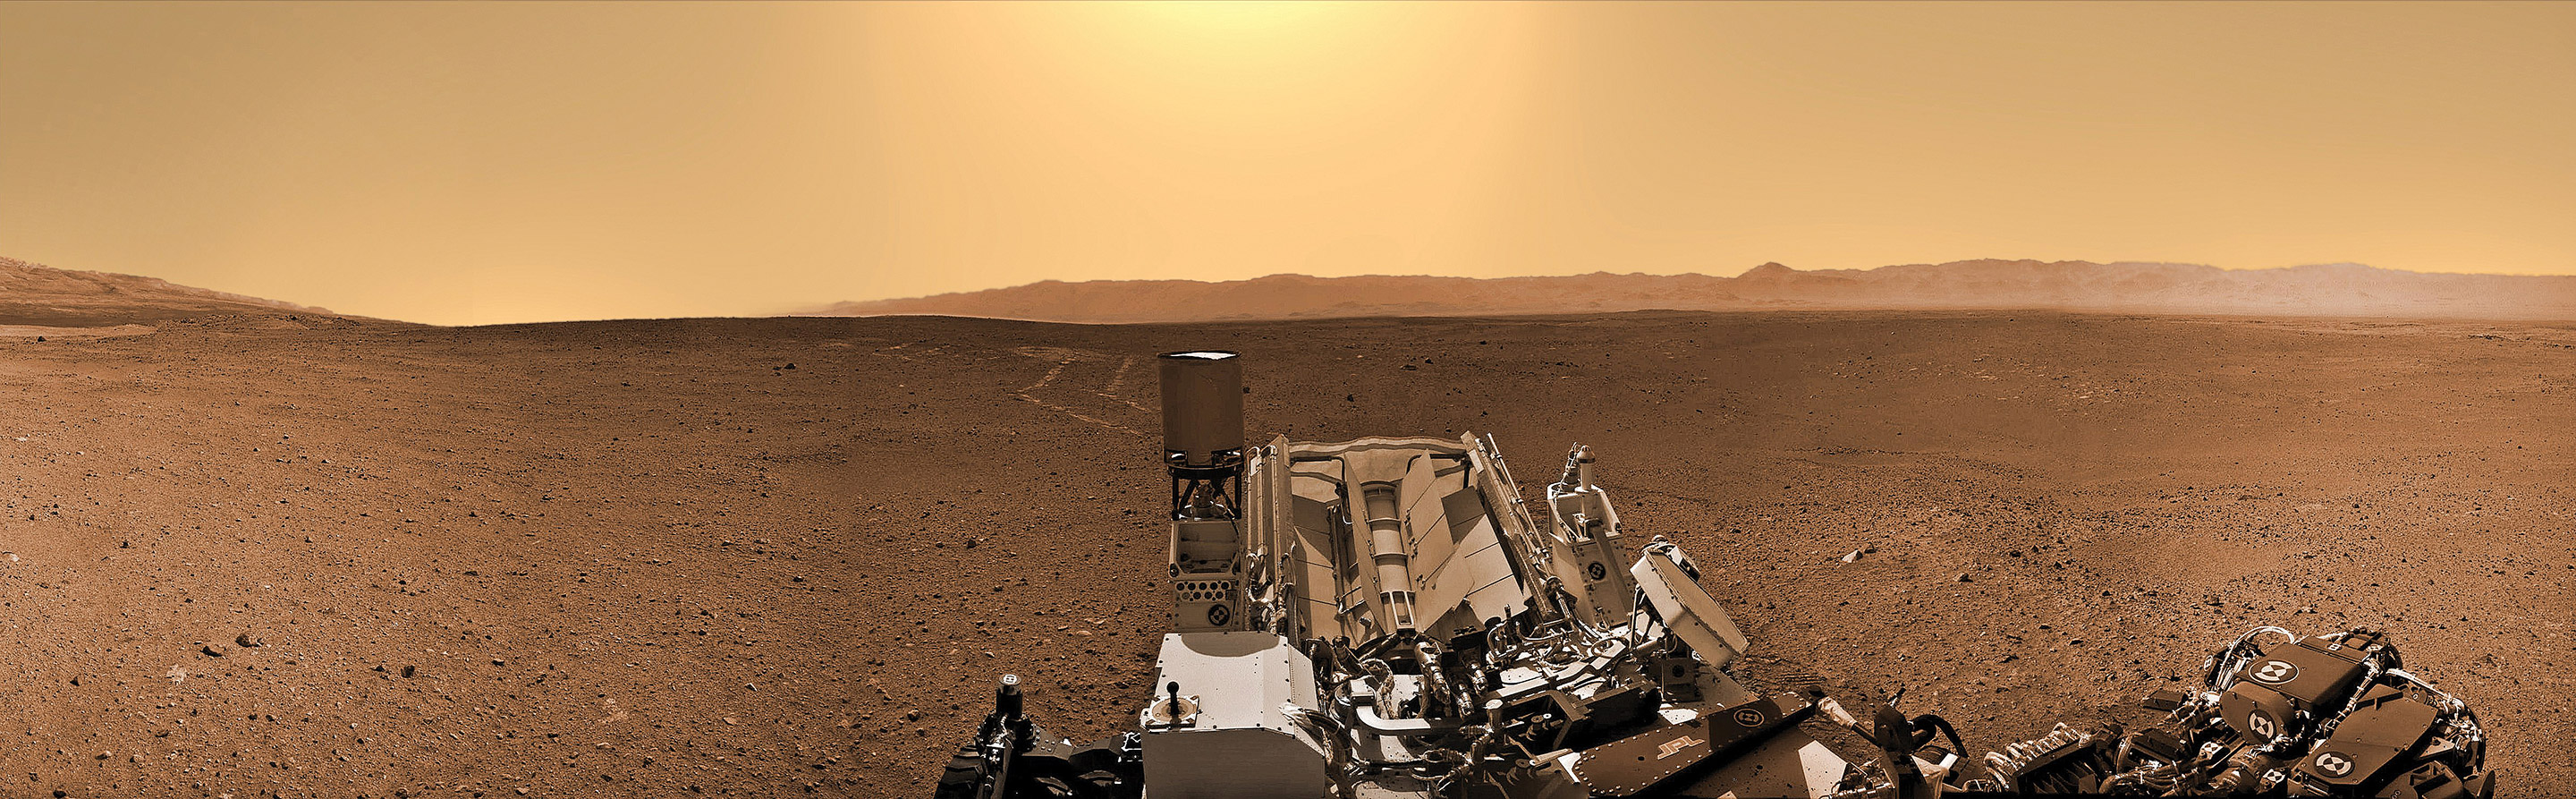 Curiosity looks back to her rover tracks, the foothills of Mount Sharp and the eroded rim of Gale Crater in the distant horizon on Sol 24 (Aug. 30, 2012). The robot is taking the first radiation measurements from the surface to determine if future human explorers can live on Mars. Featured on PBS NOVA TV. Credit: NASA/JPL-Caltech/Ken Kremer/Marco Di Lorenzo